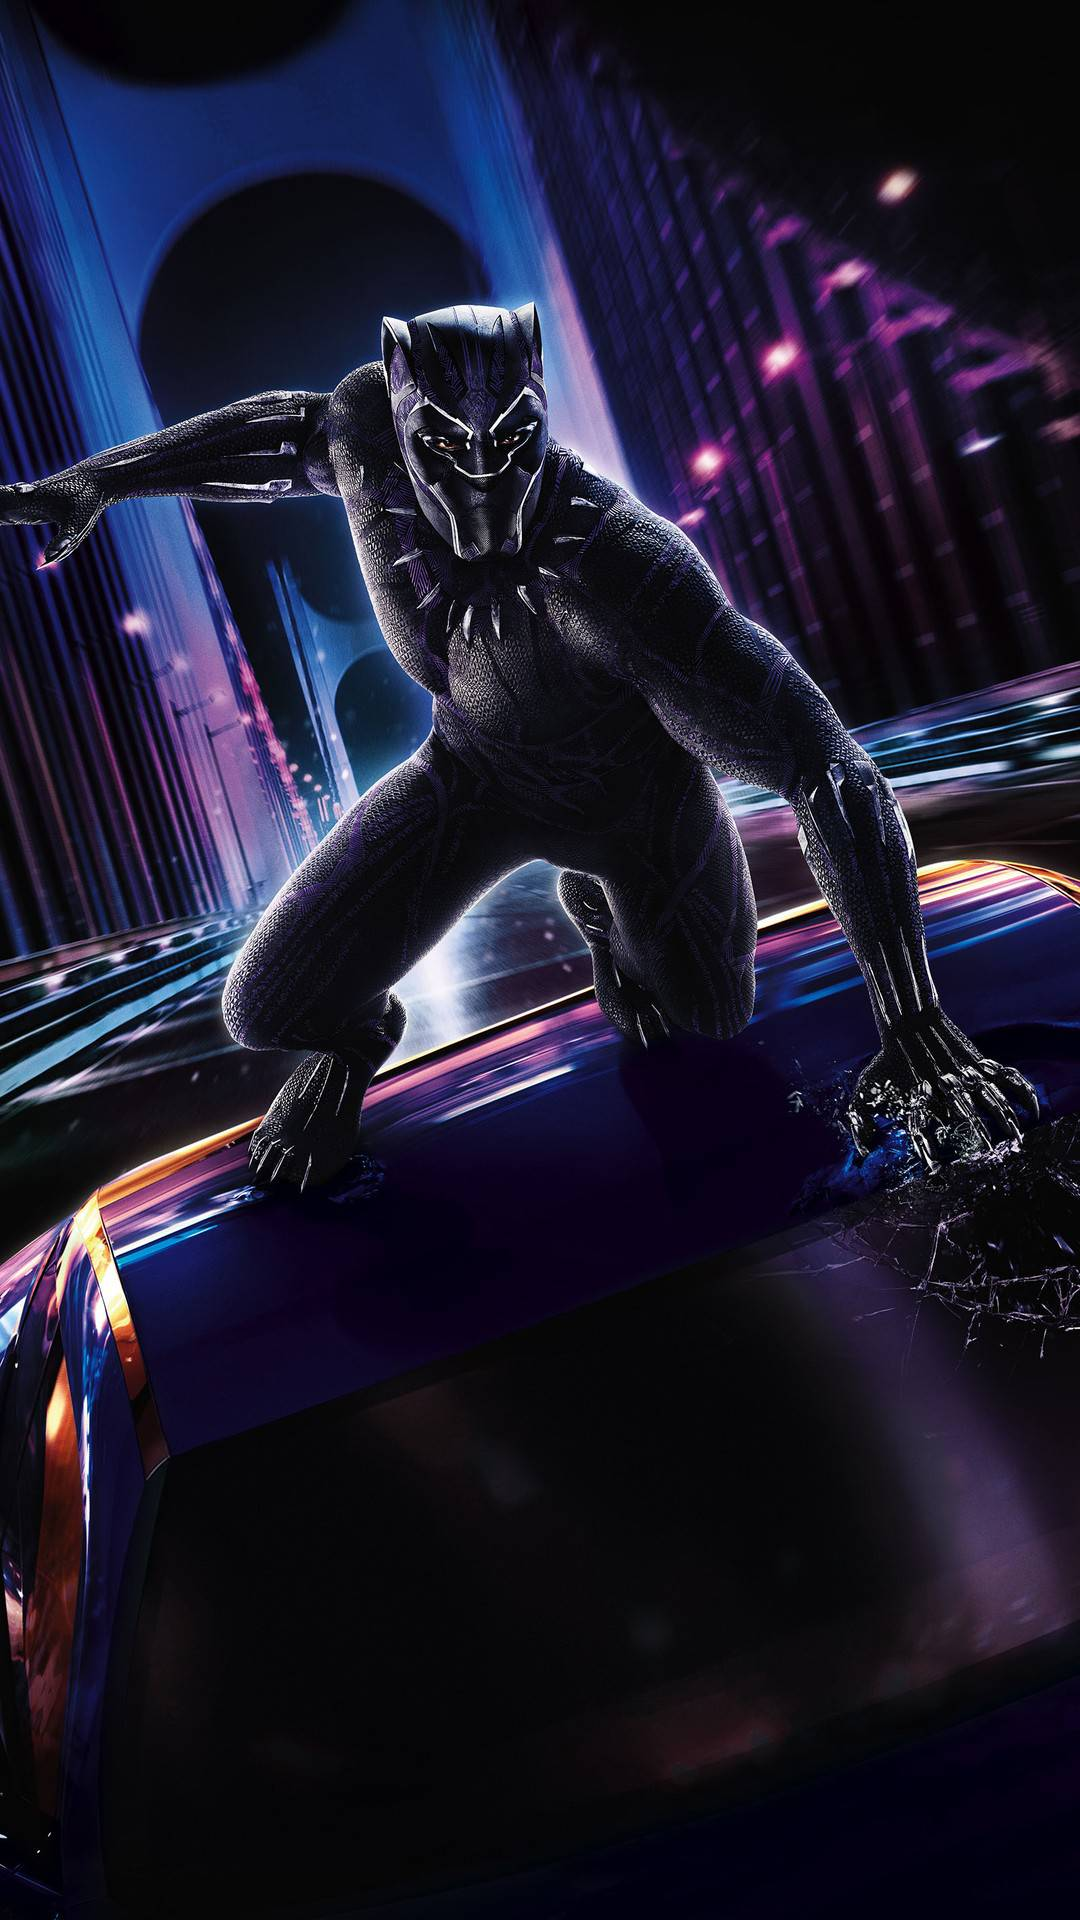 Fast Cars And Girls Wallpaper Marvel Black Panther Action Iphone Wallpaper Iphone